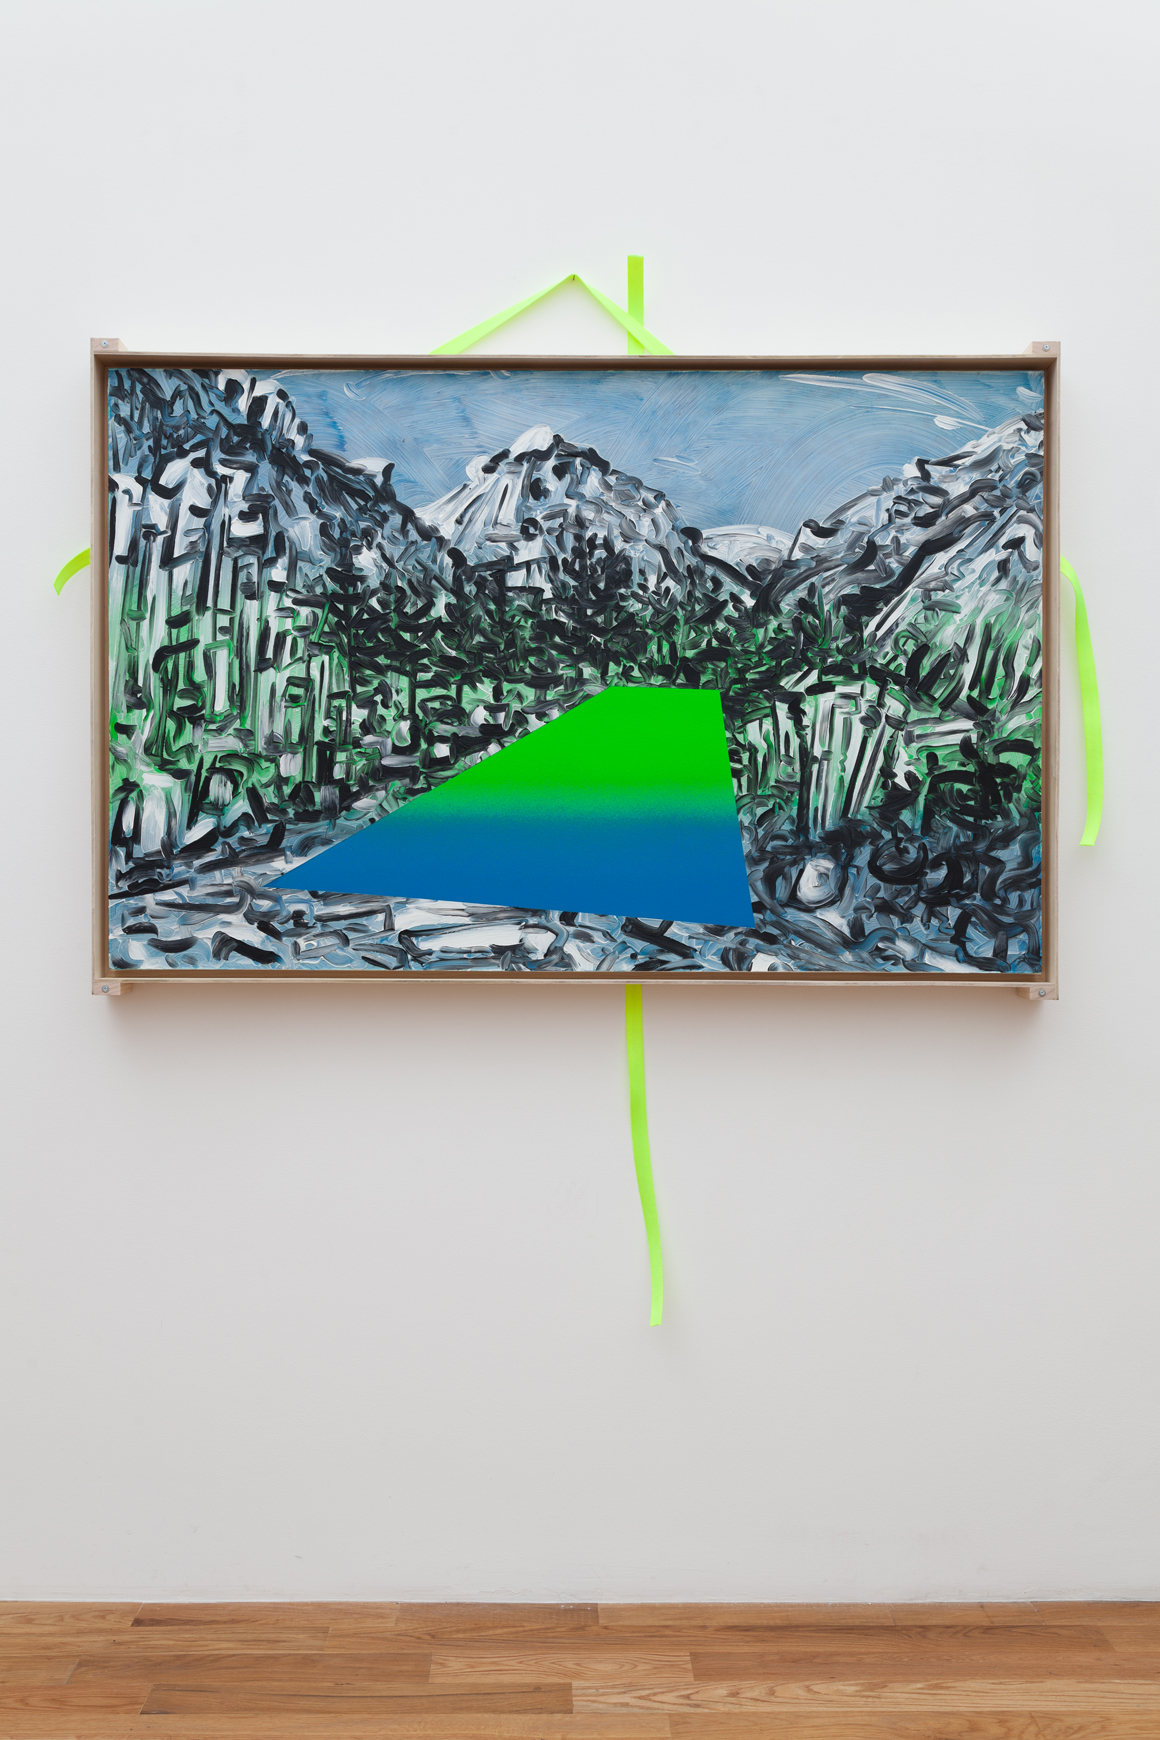 "<p><em>40°41'06.8""N 105°23'16.6""W</em><span class='media'>Oil on DayGlo with transportation crate and straps</span>36 x 56 in  (91.4 x 142.2 cm)<br>2015<br><a class='inquire' href='mailto:info@gildargallery.com?subject=Artwork Inquiry JCOC0007&body=I am interested in finding out more about 40°41'06.8""N 105°23'16.6""W by Joey Cocciardi'>Inquire</a></p>"